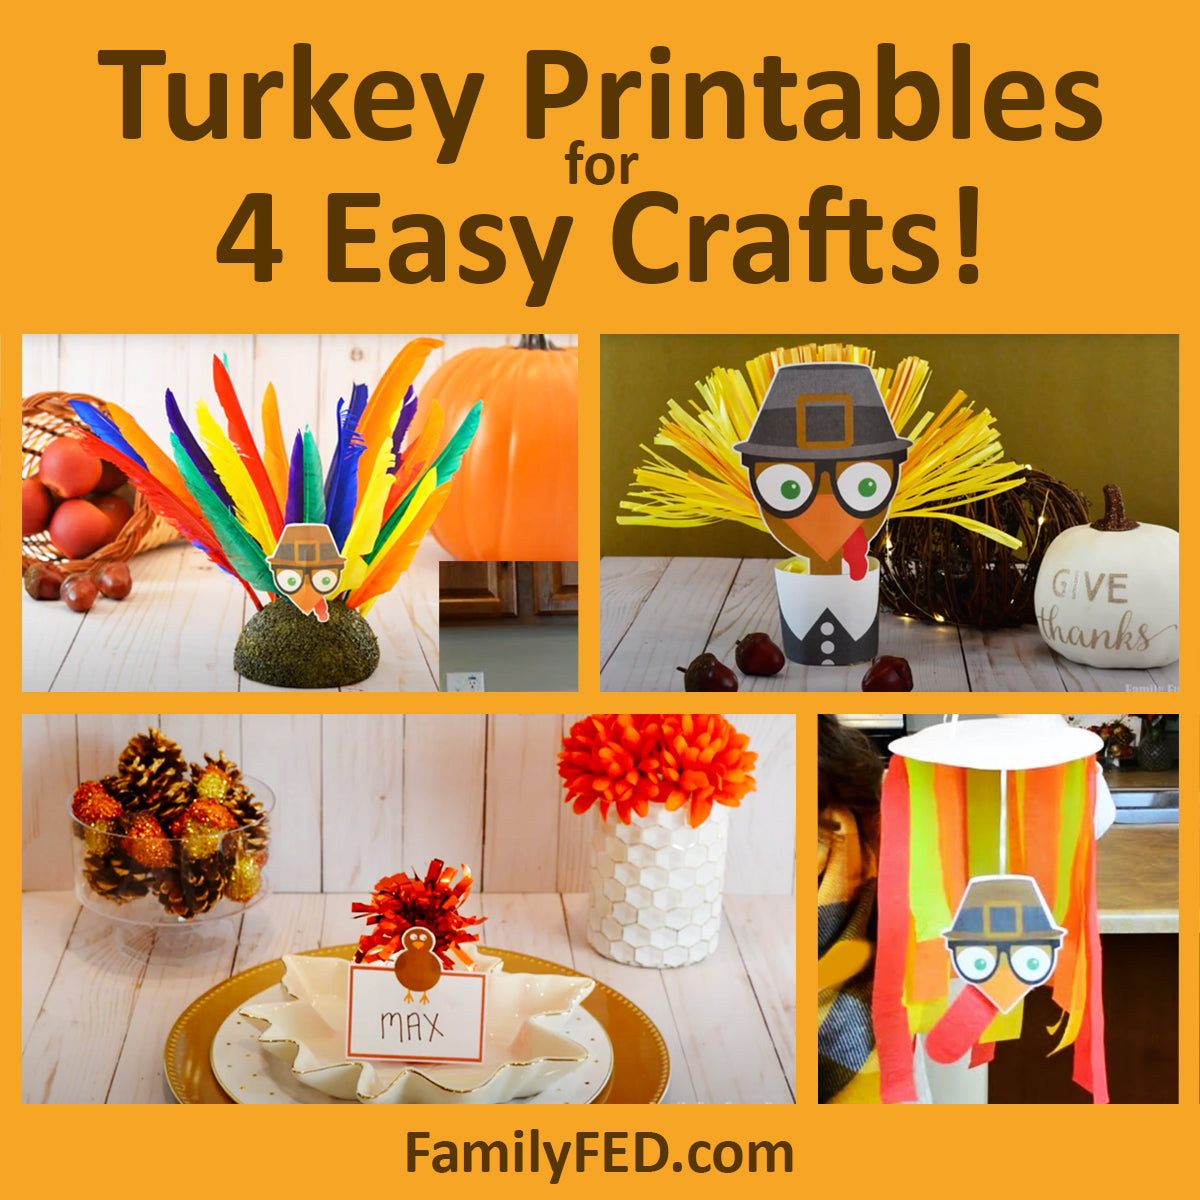 Turkey Printables for 4 Easy Turkey Crafts for the Best Thanksgiving Parties or Thanksgiving Decor